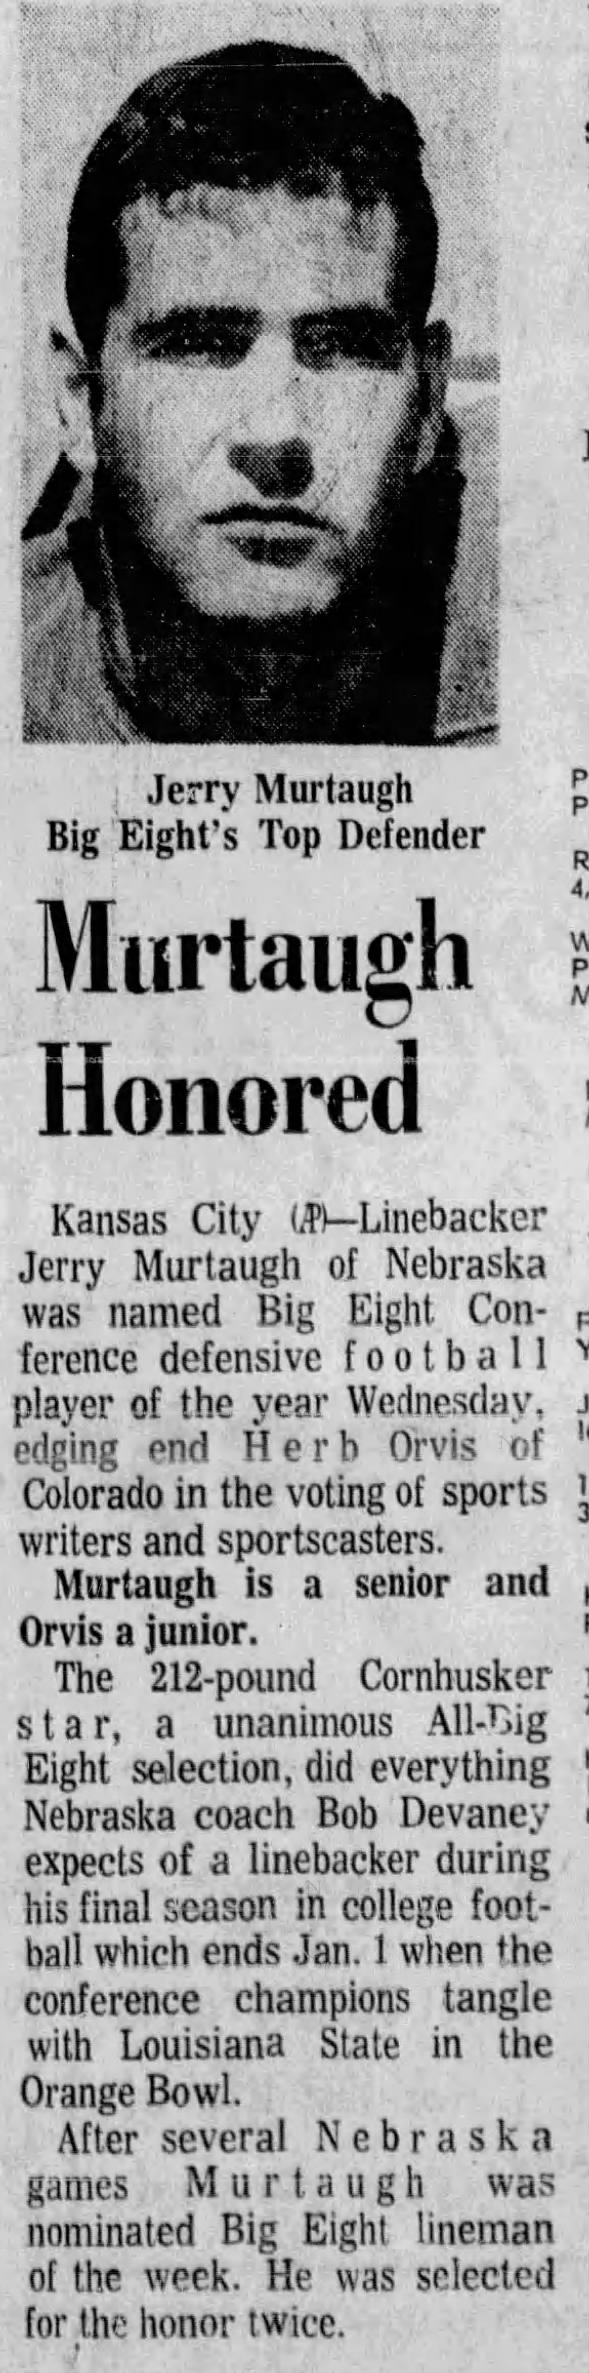 1970.12.09 Murtaugh Big Eight Defensive Player of the Year